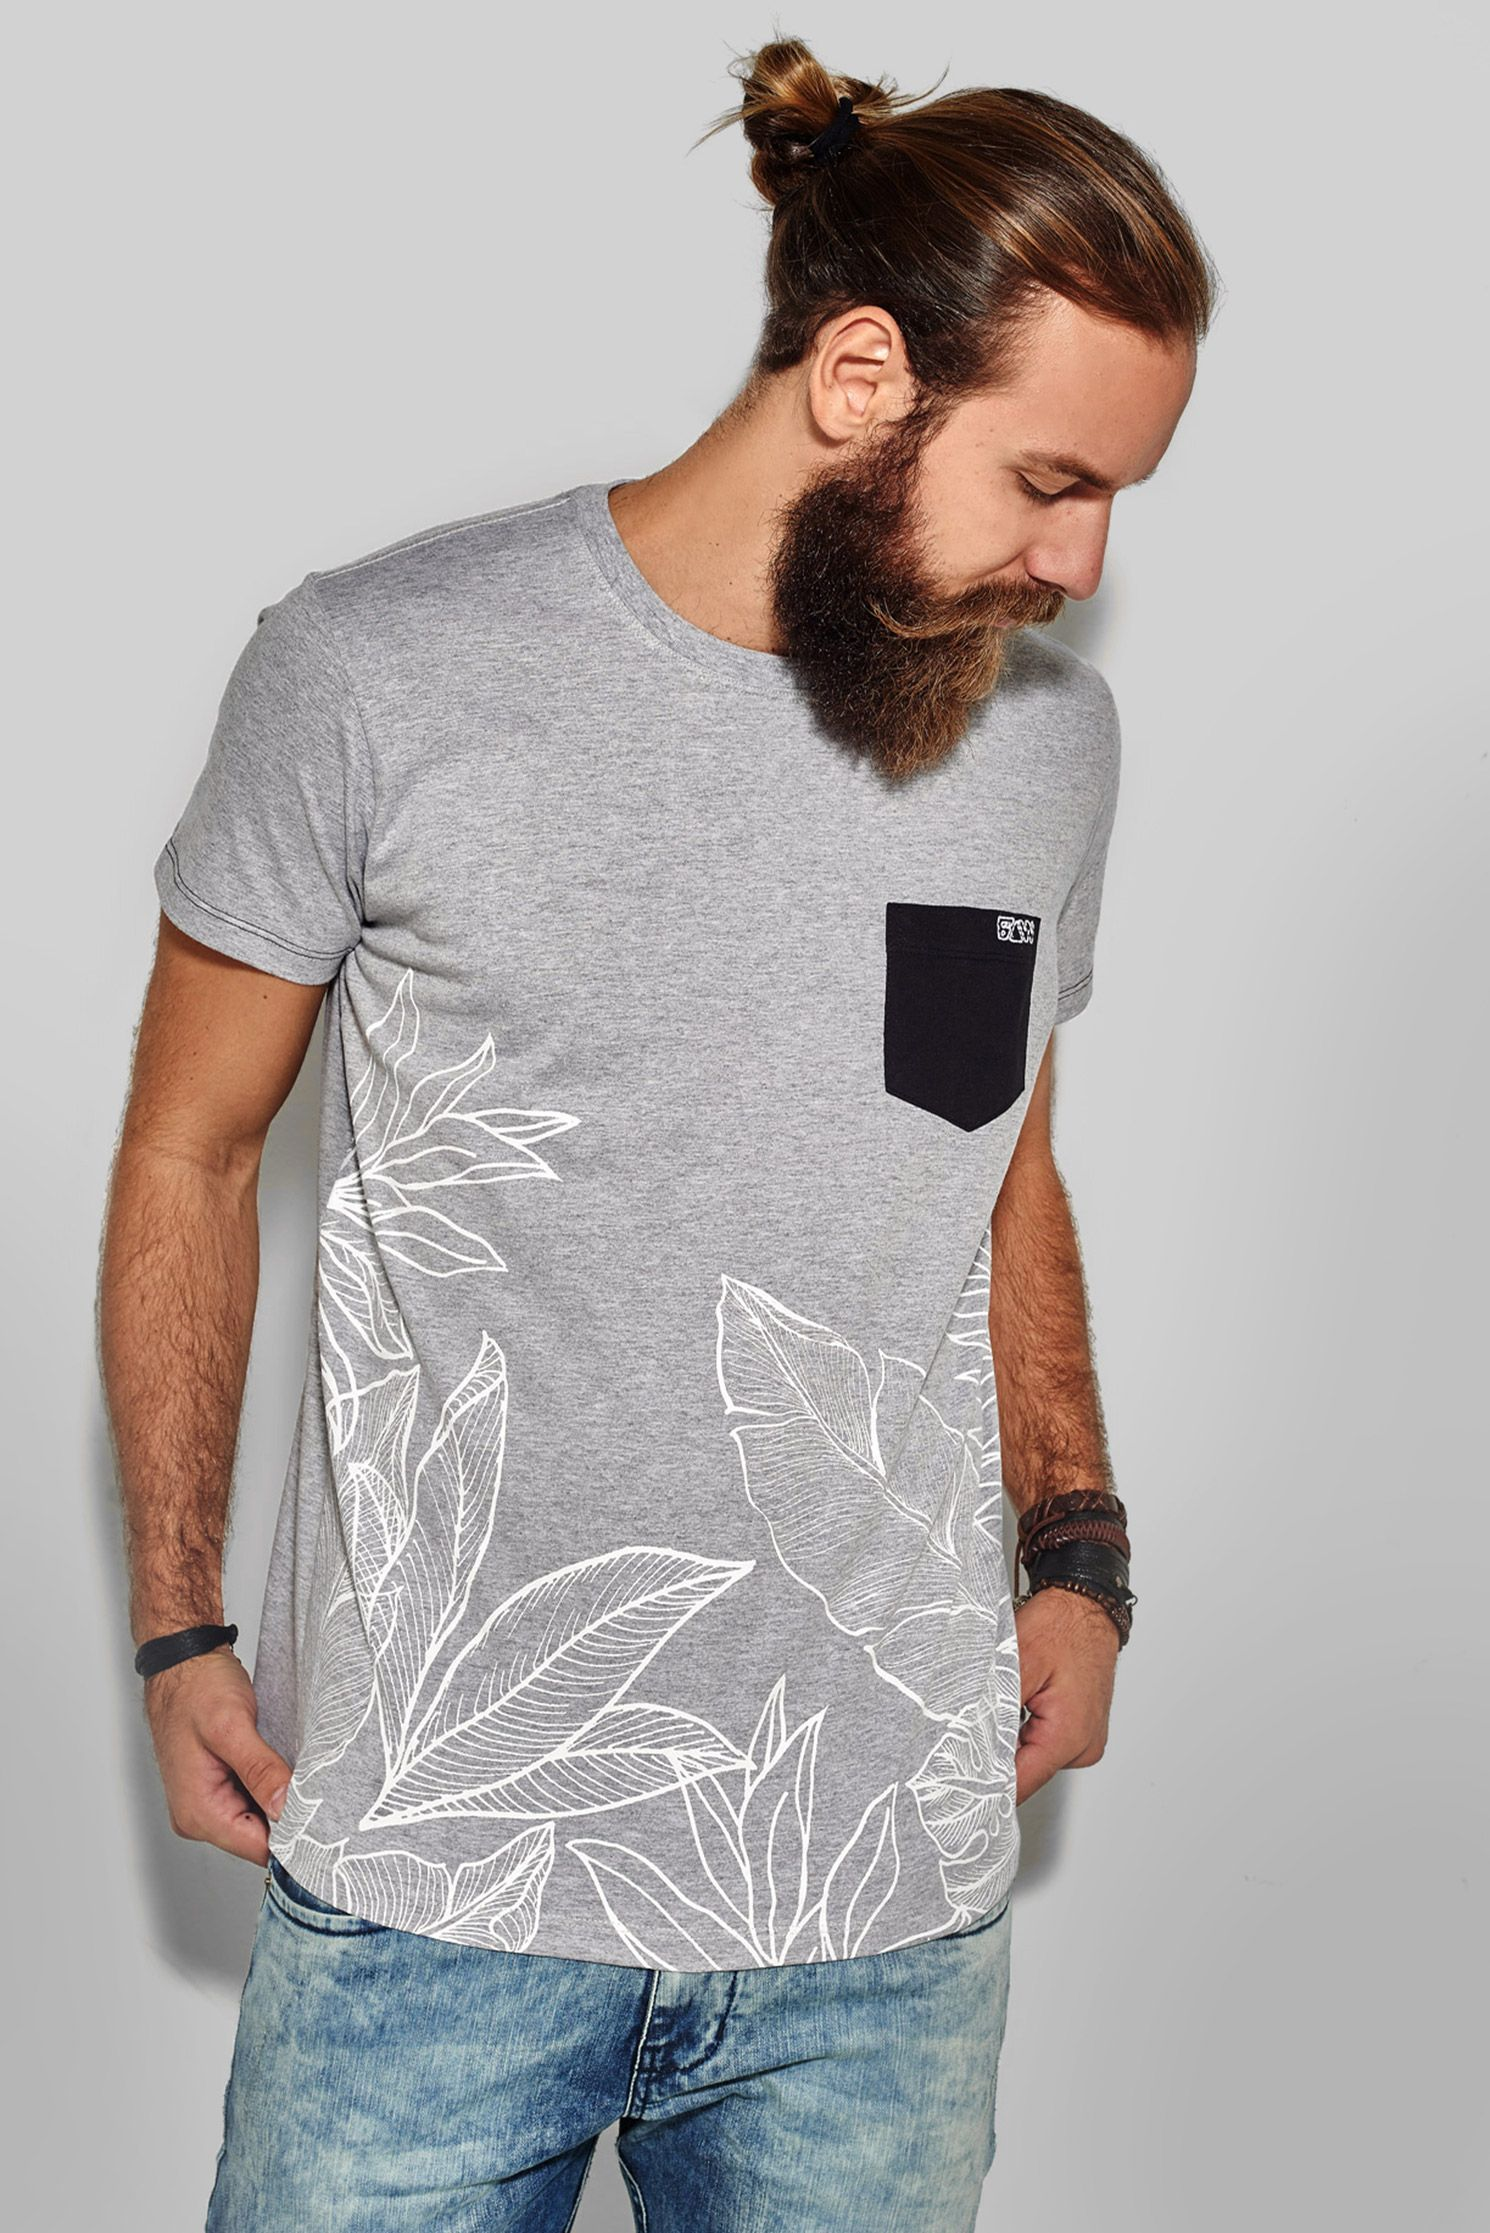 ce3b33267 Top 5 Trends for Men Men's Fashion is not basic anymore. With designers and  brands working towards satisfying the taste of men.